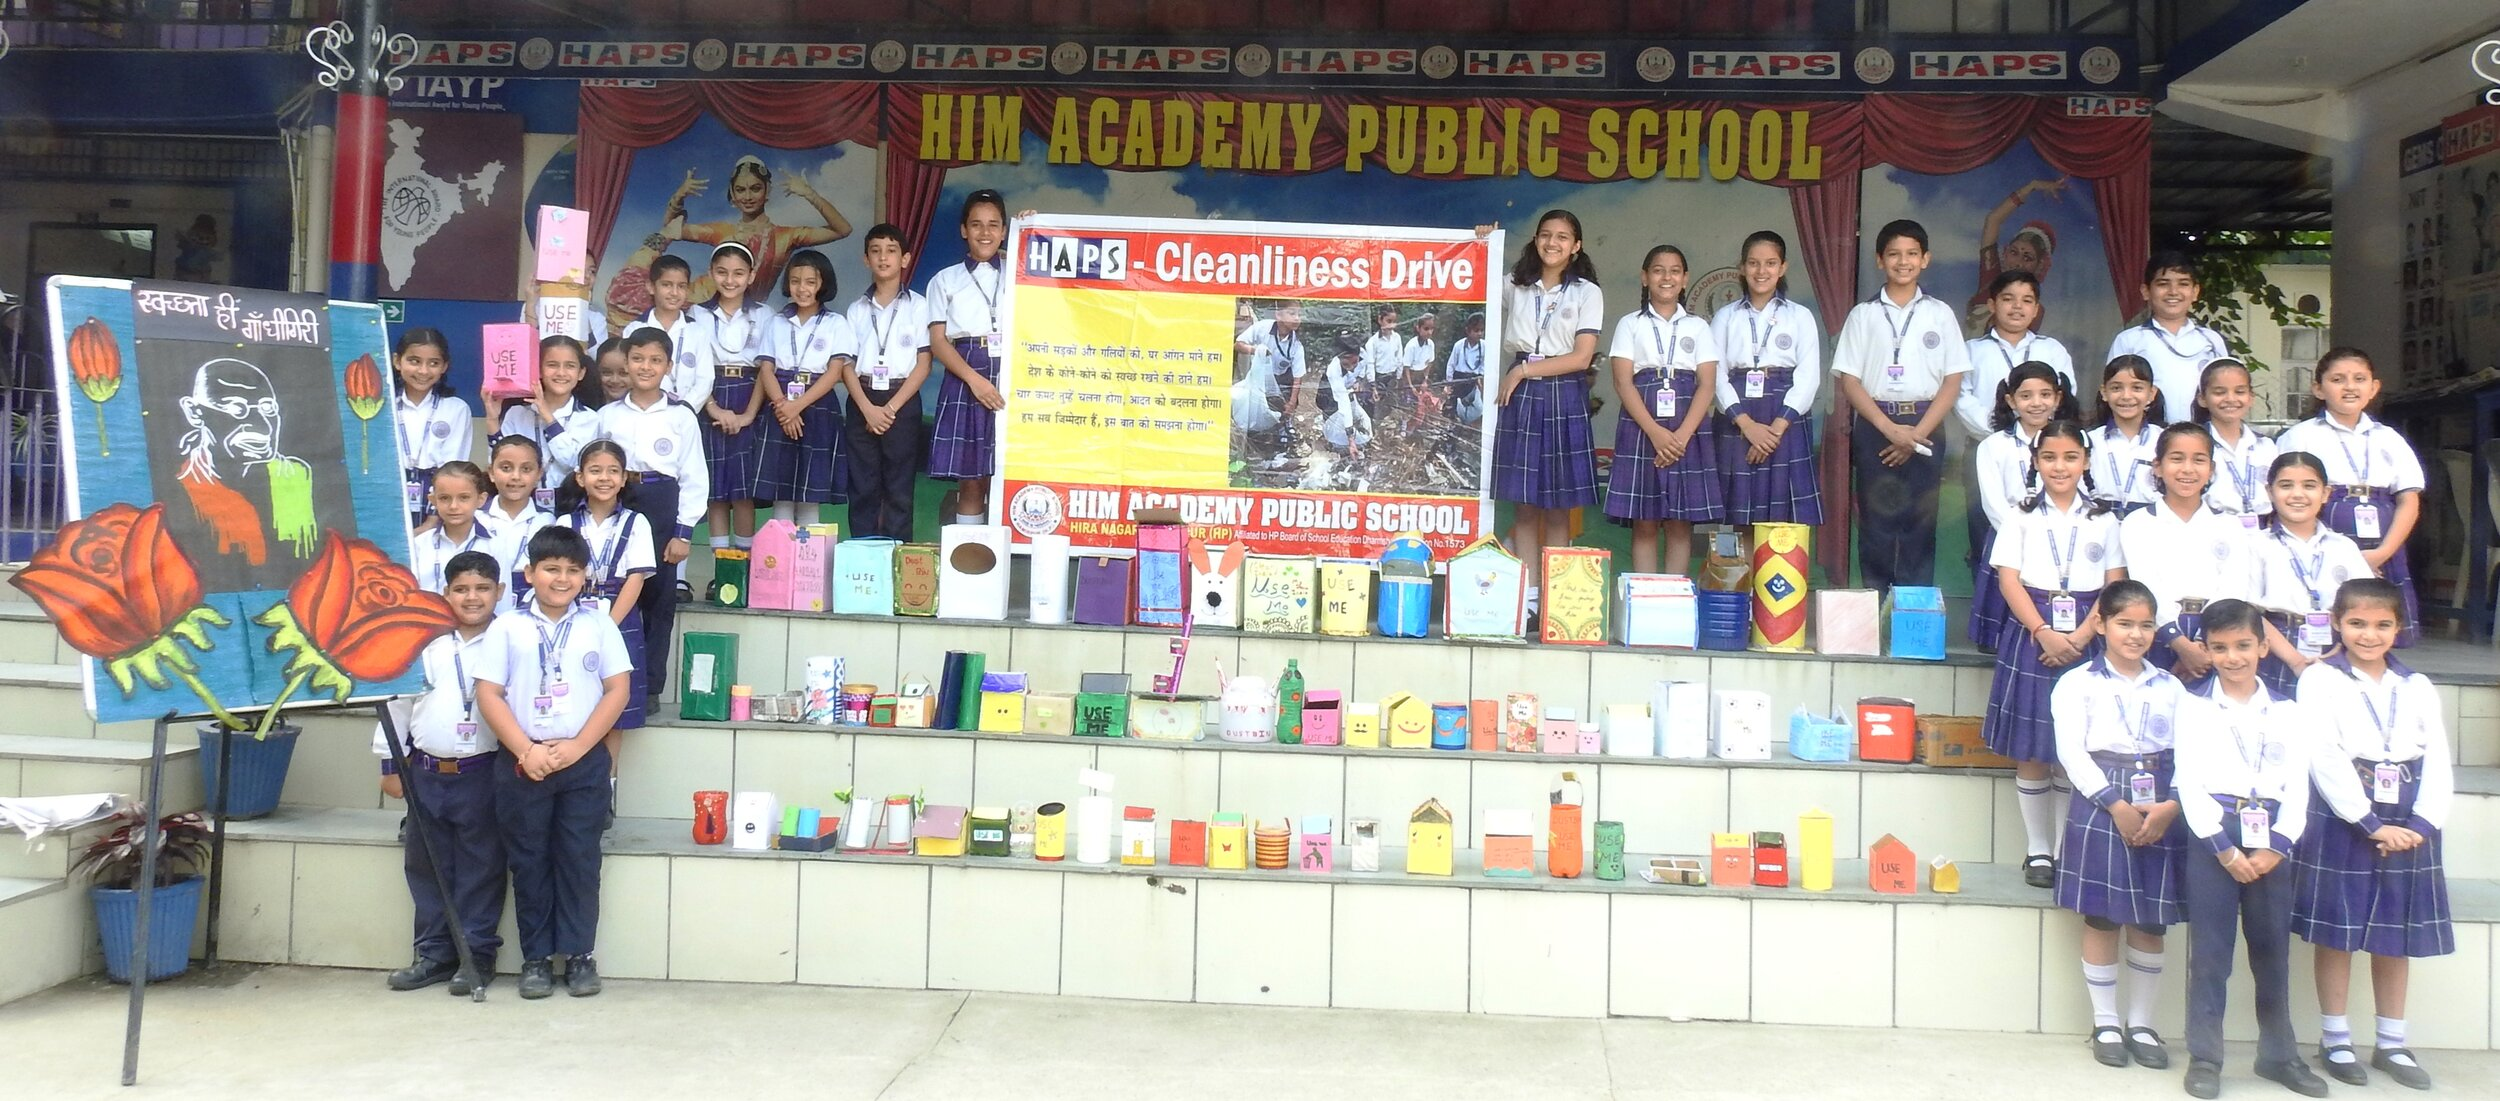 HAPS - Cleanliness Drive1.JPG